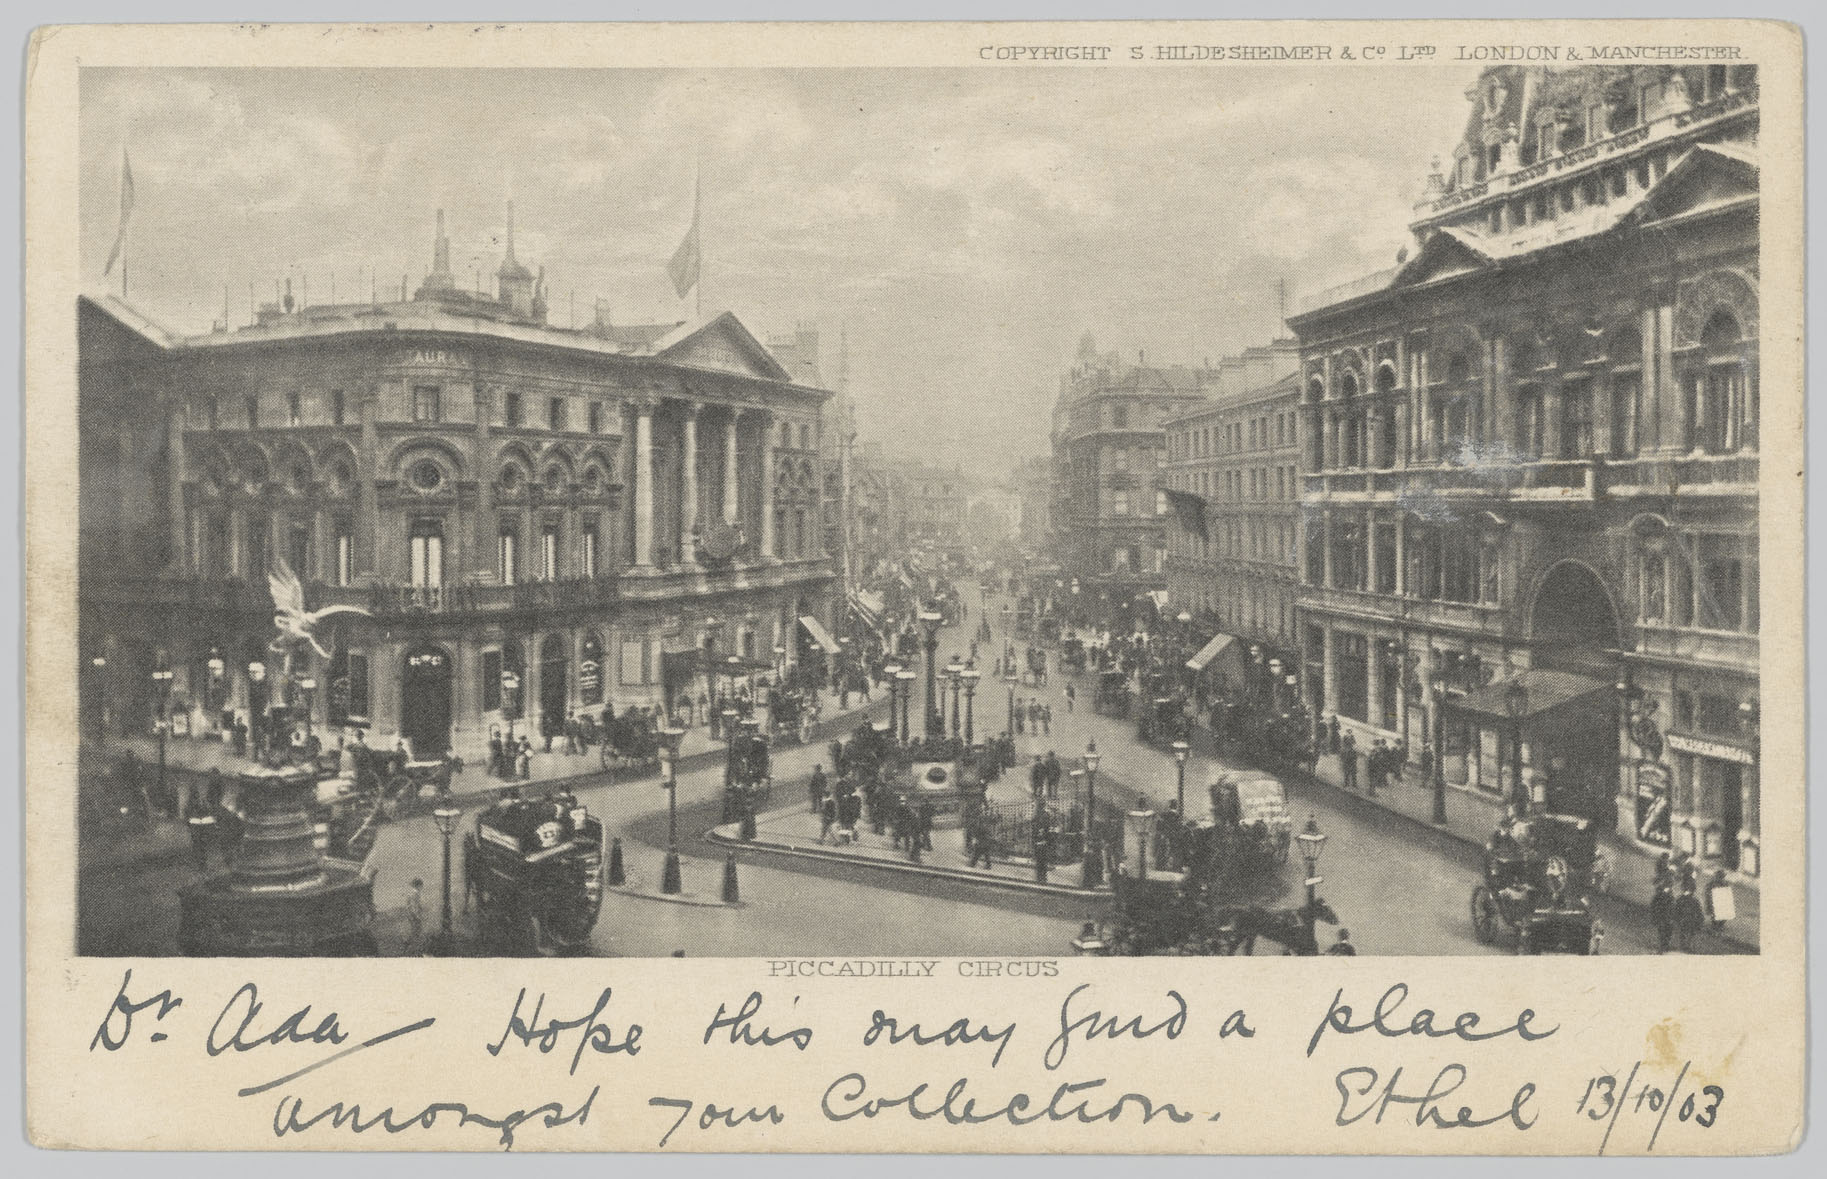 Black and white postcard of Piccadilly Circus with the message written at the bottom.